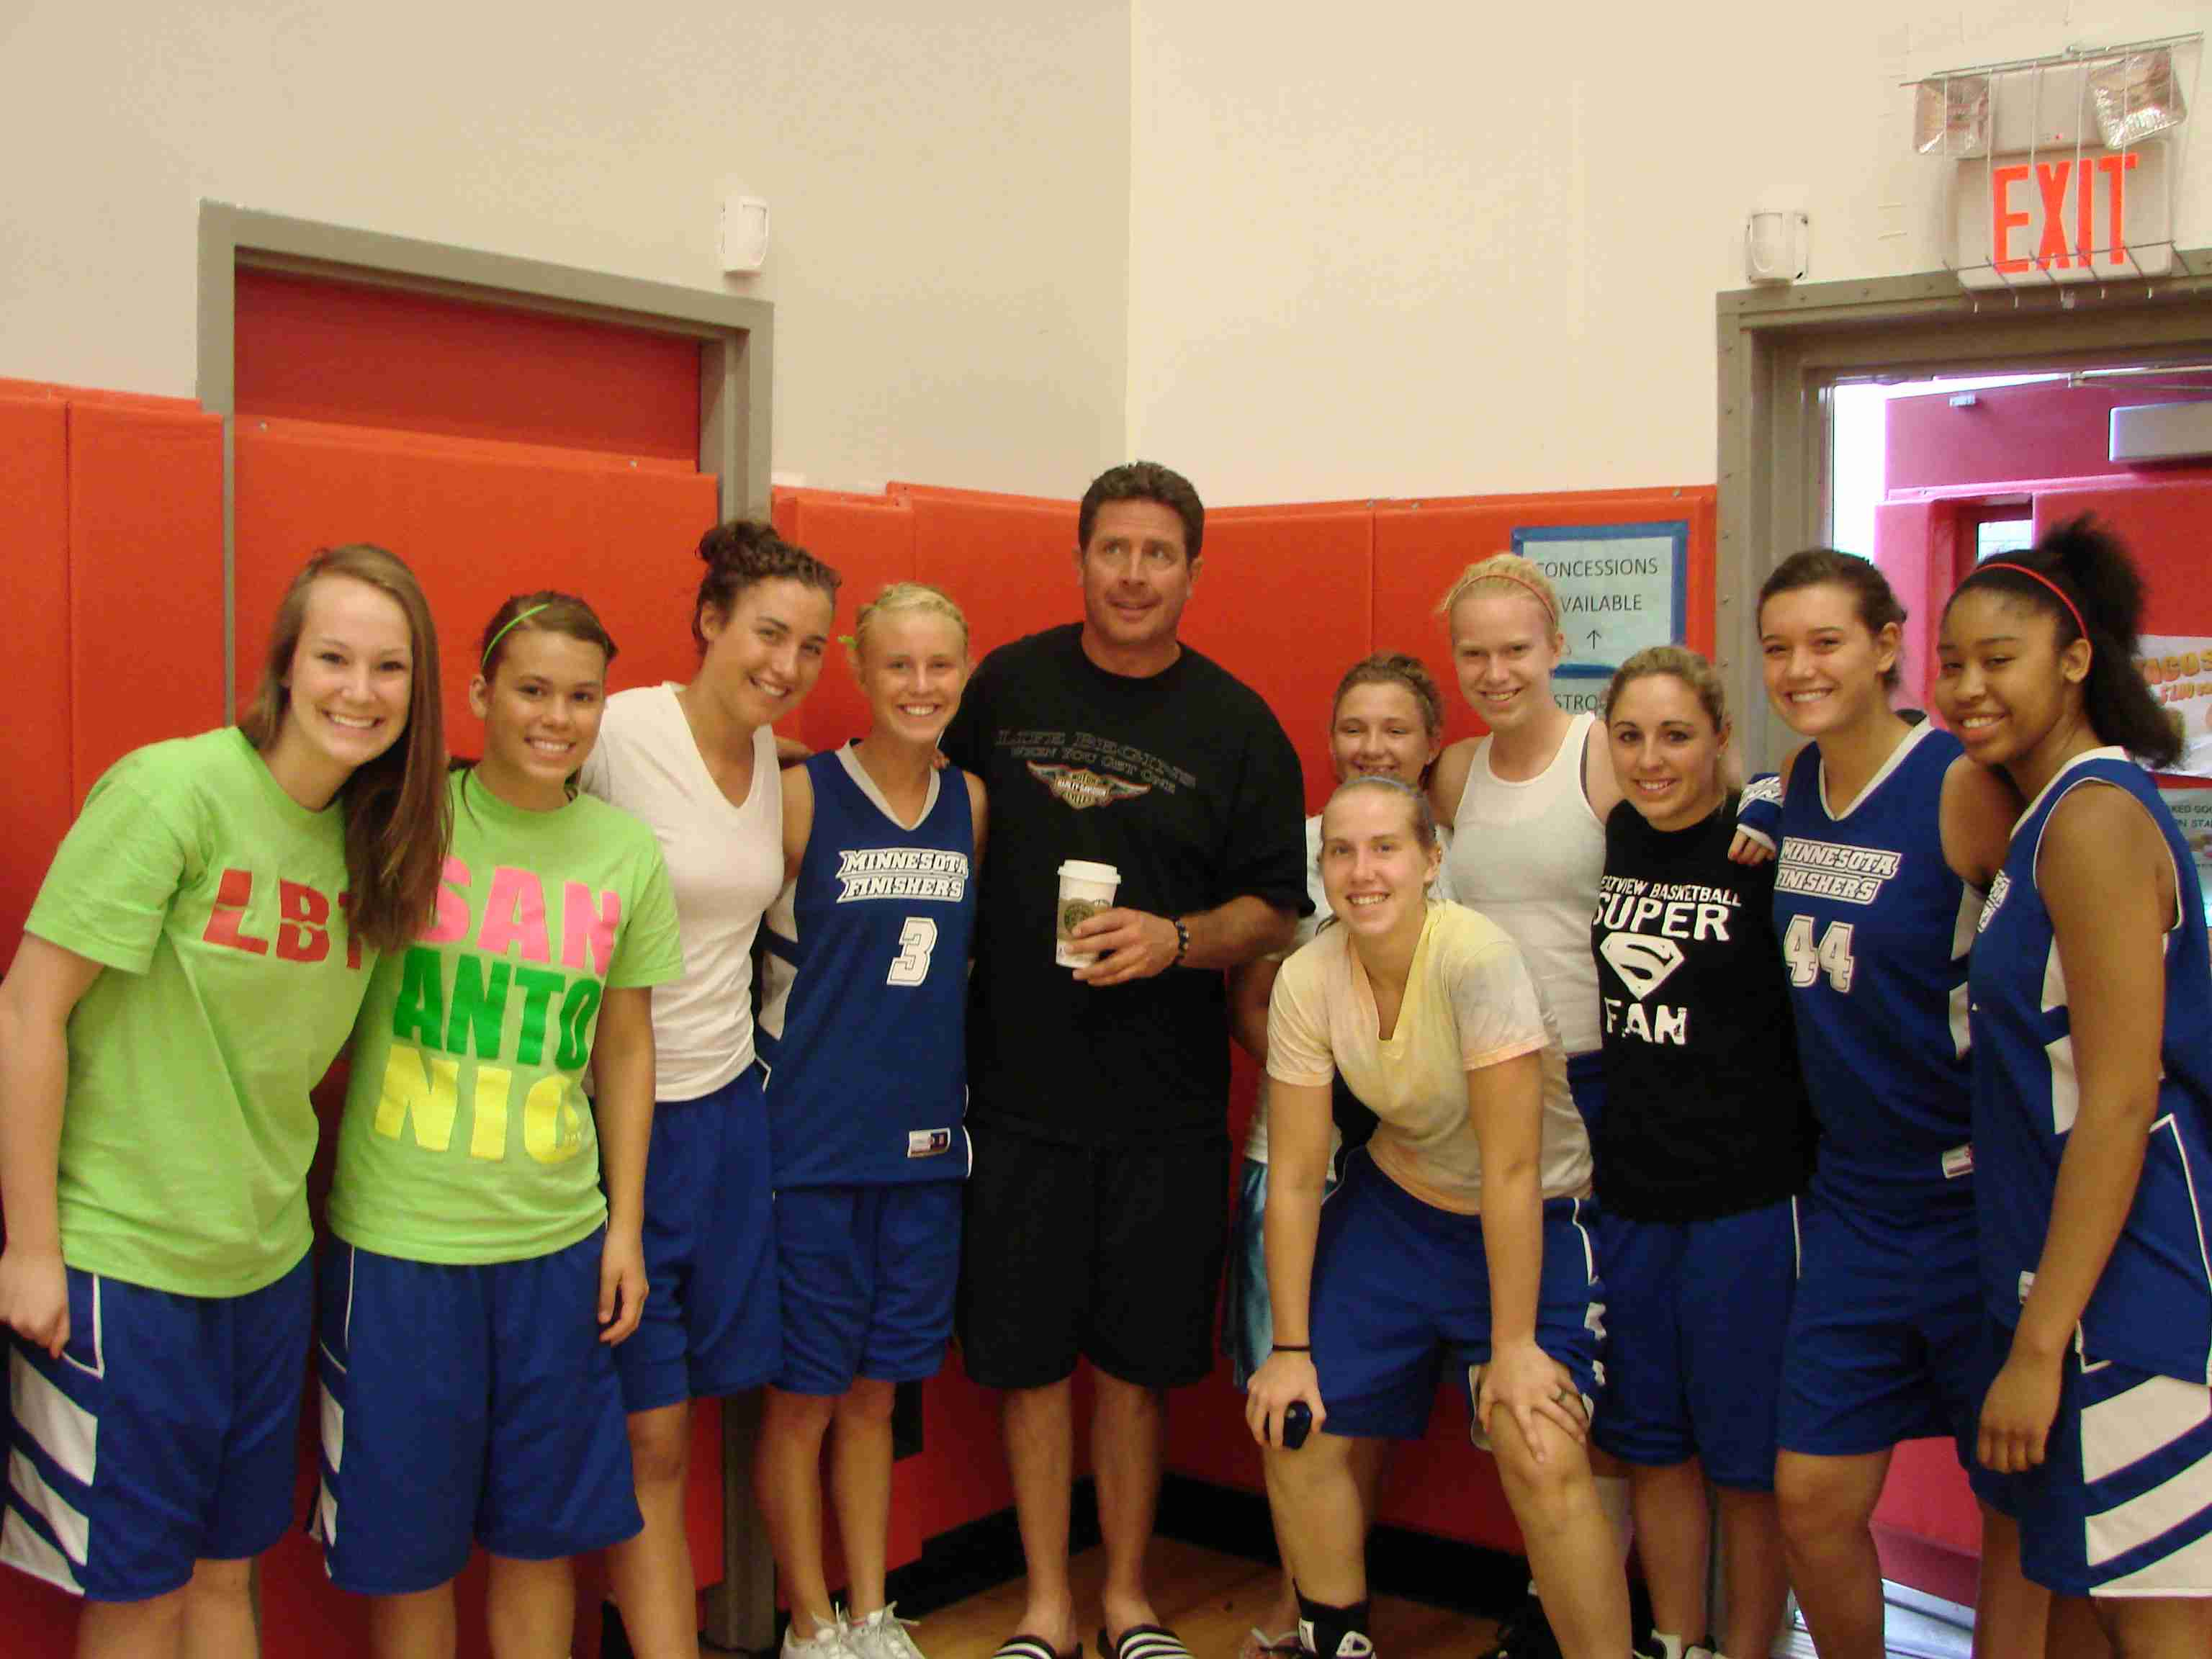 Finishers meet Dan Marino